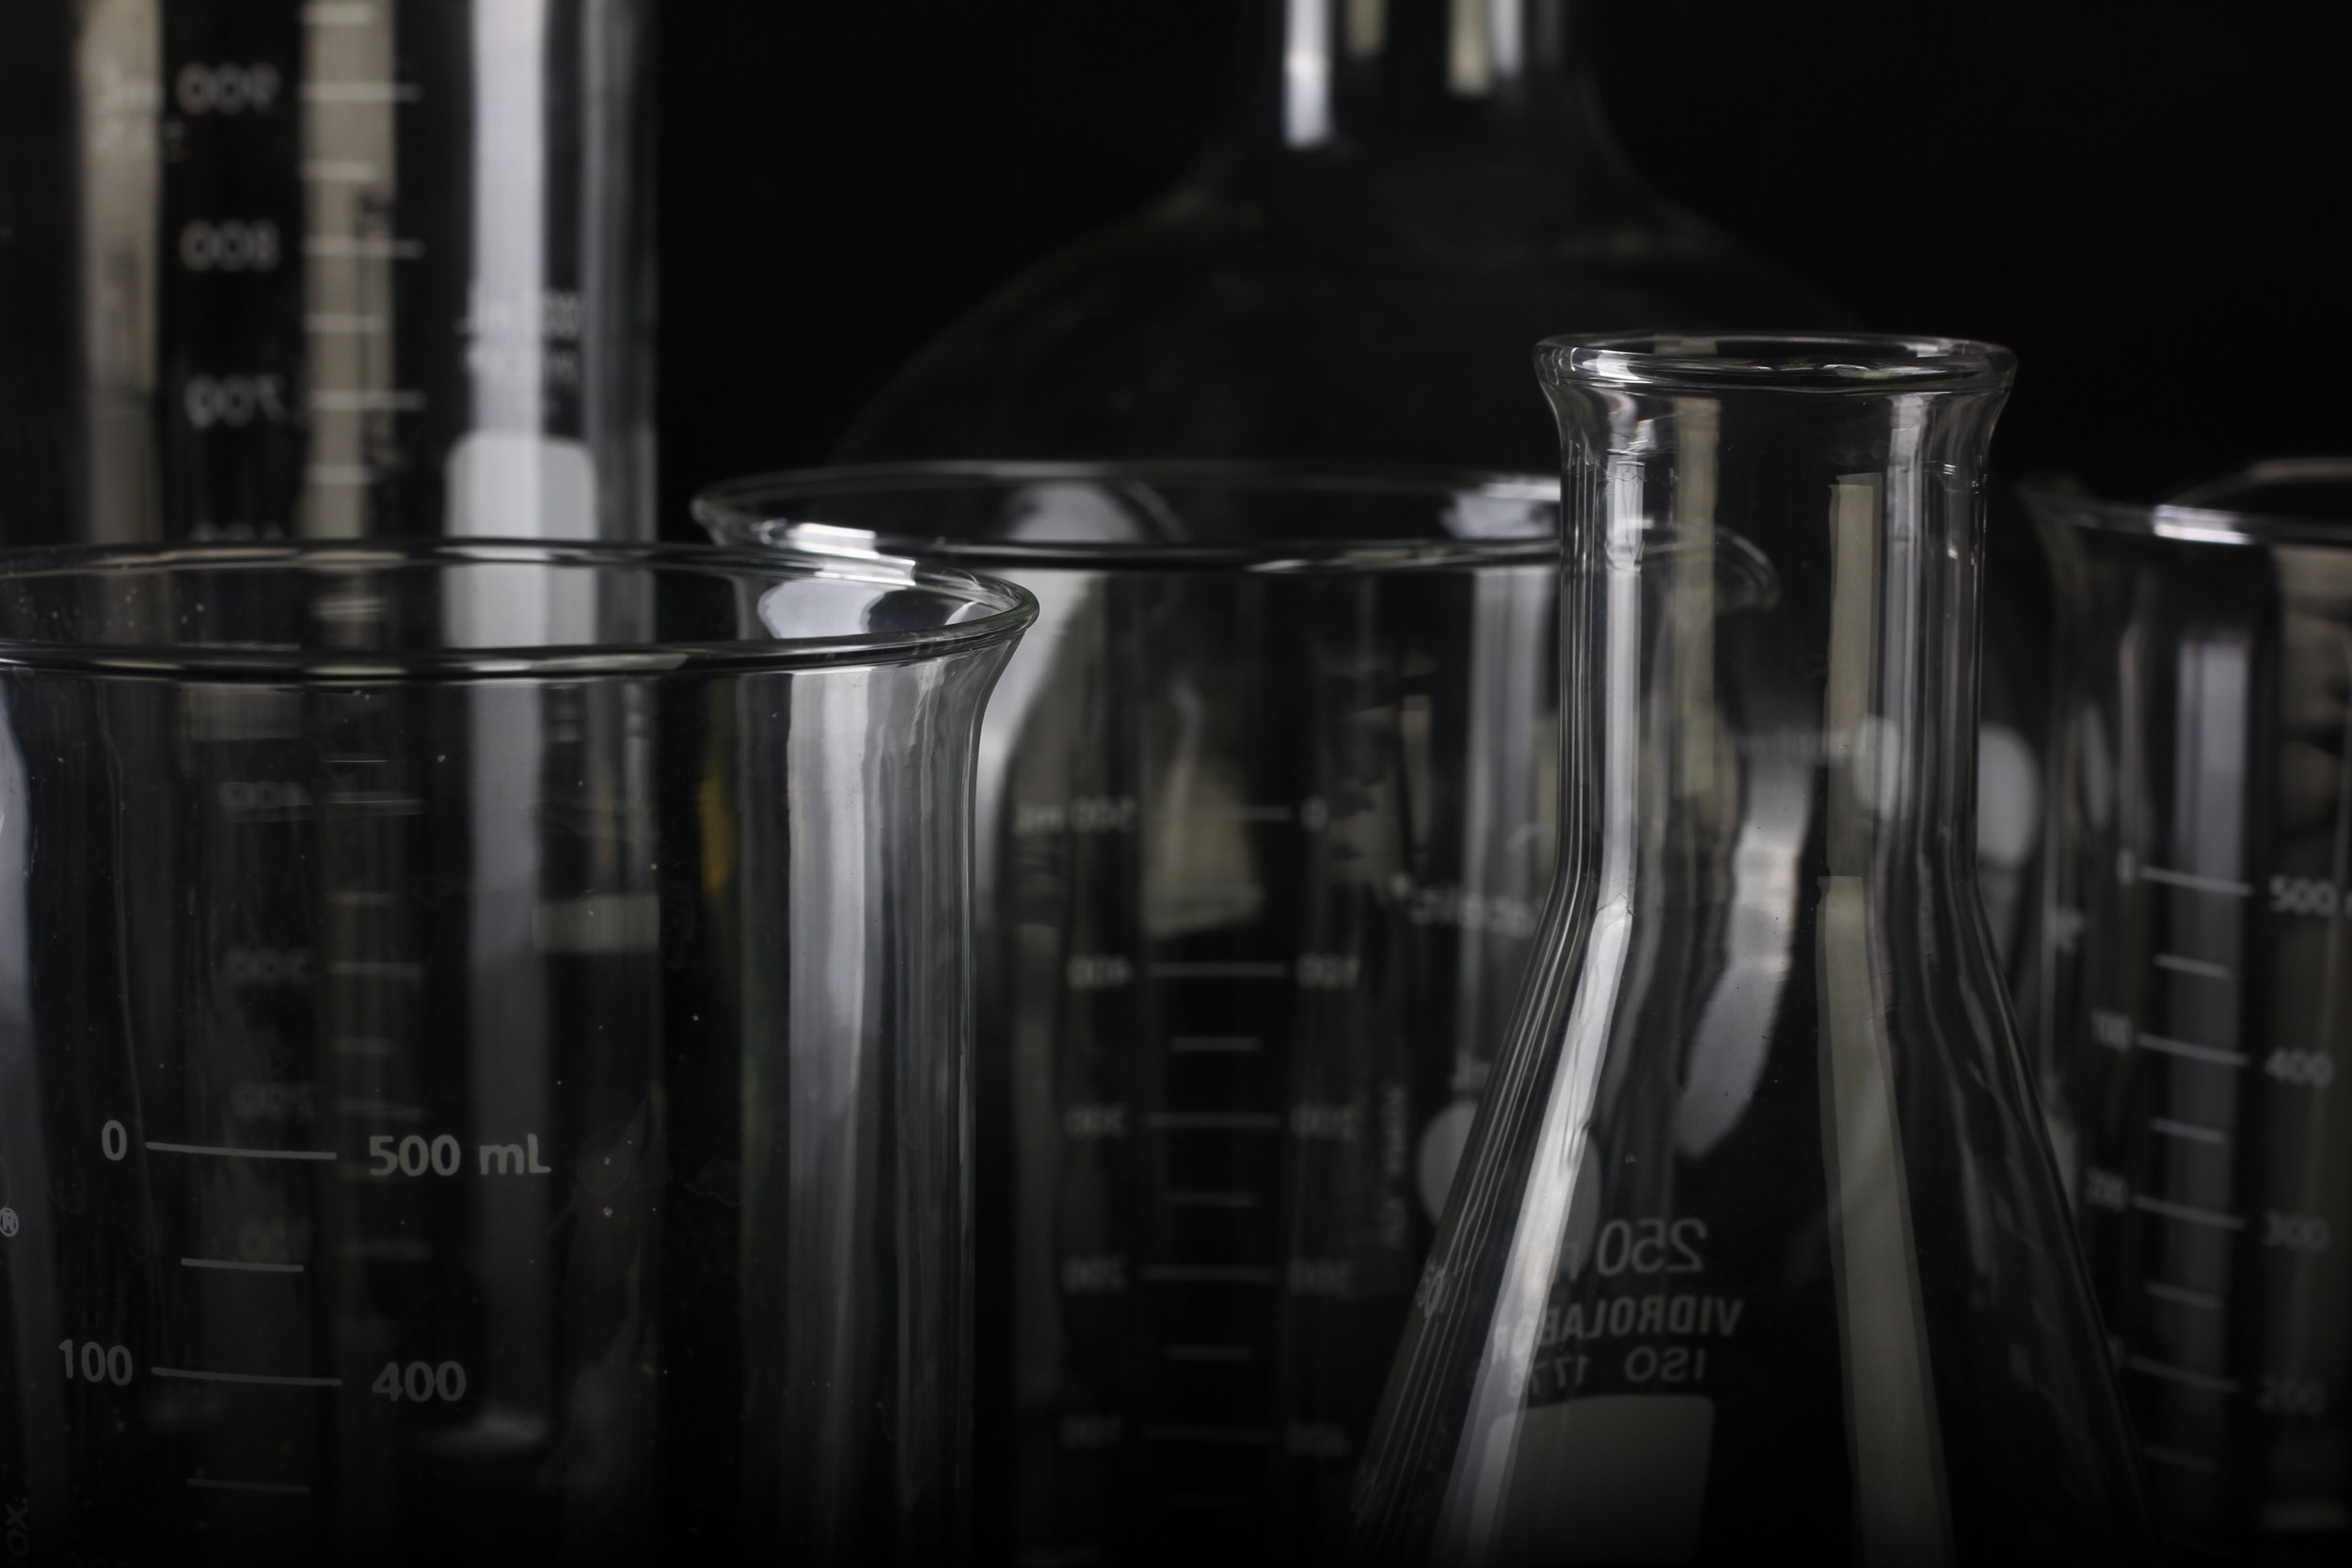 You won't need Bunsen burners, but we recommend drinking out of beakers or test tubes. That's just good scientific fun. -